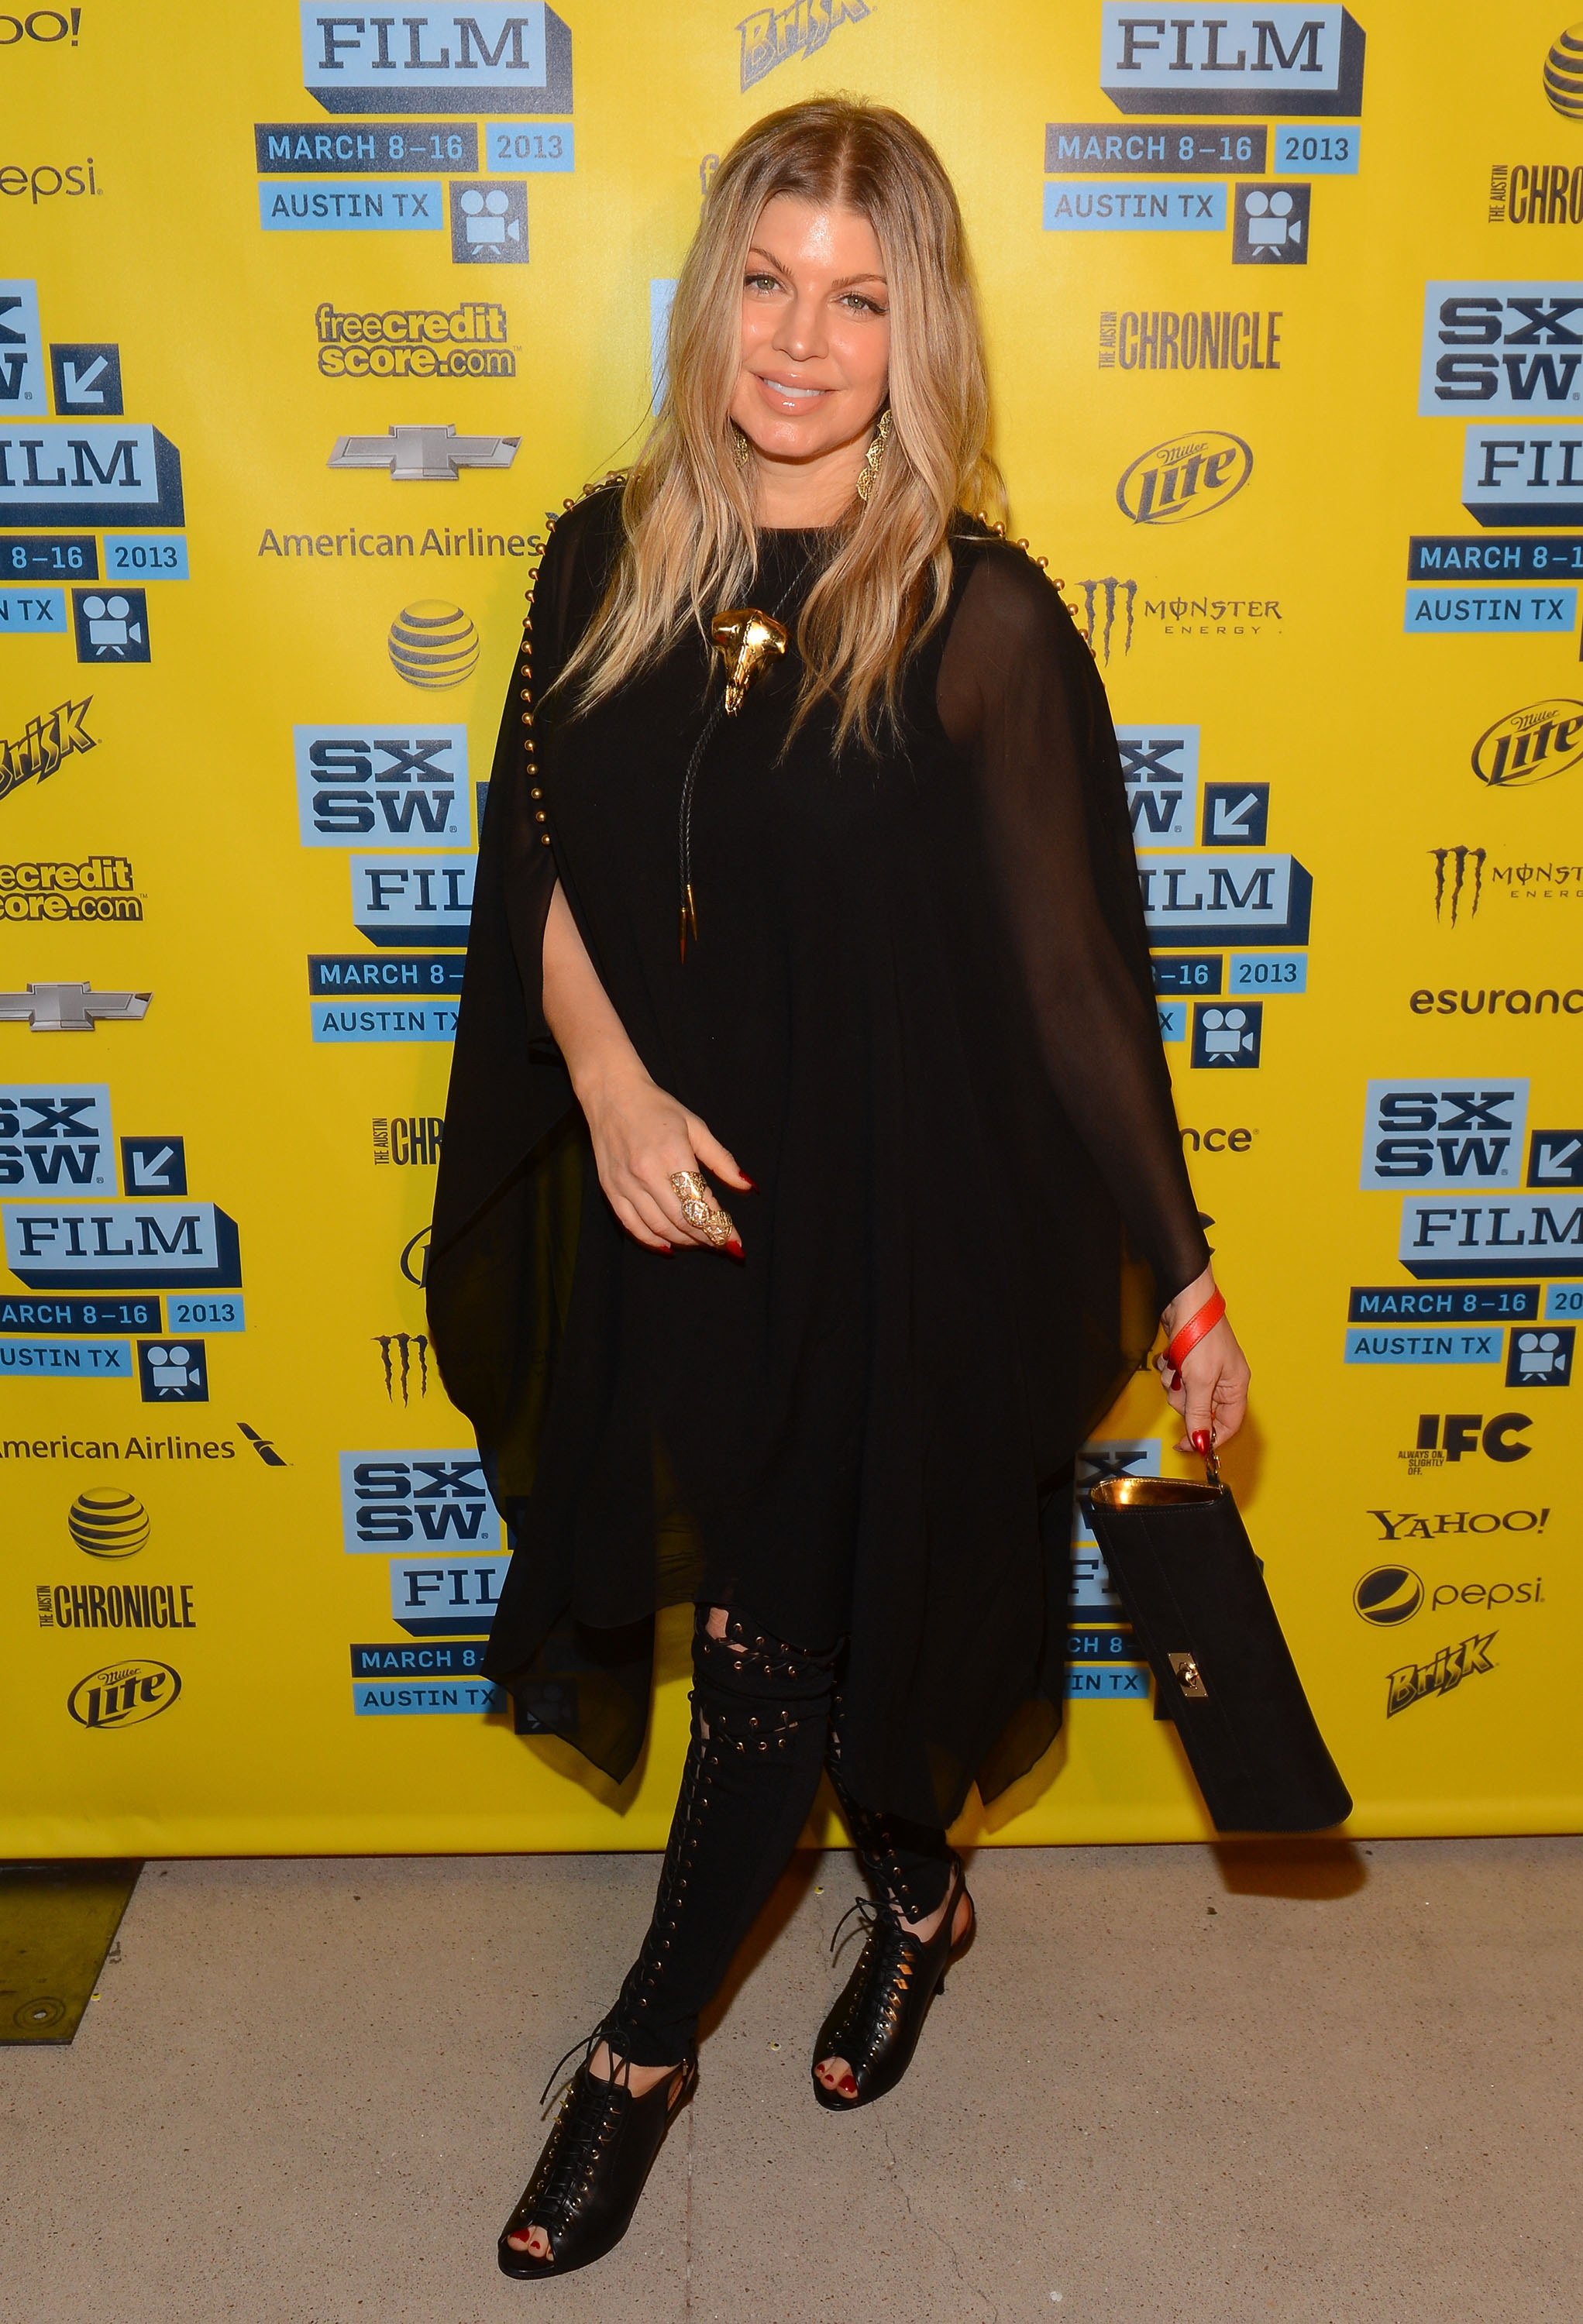 Pregnant Fergie accompanied husband Josh Duhamel for his Scenic Route screening at SXSW.